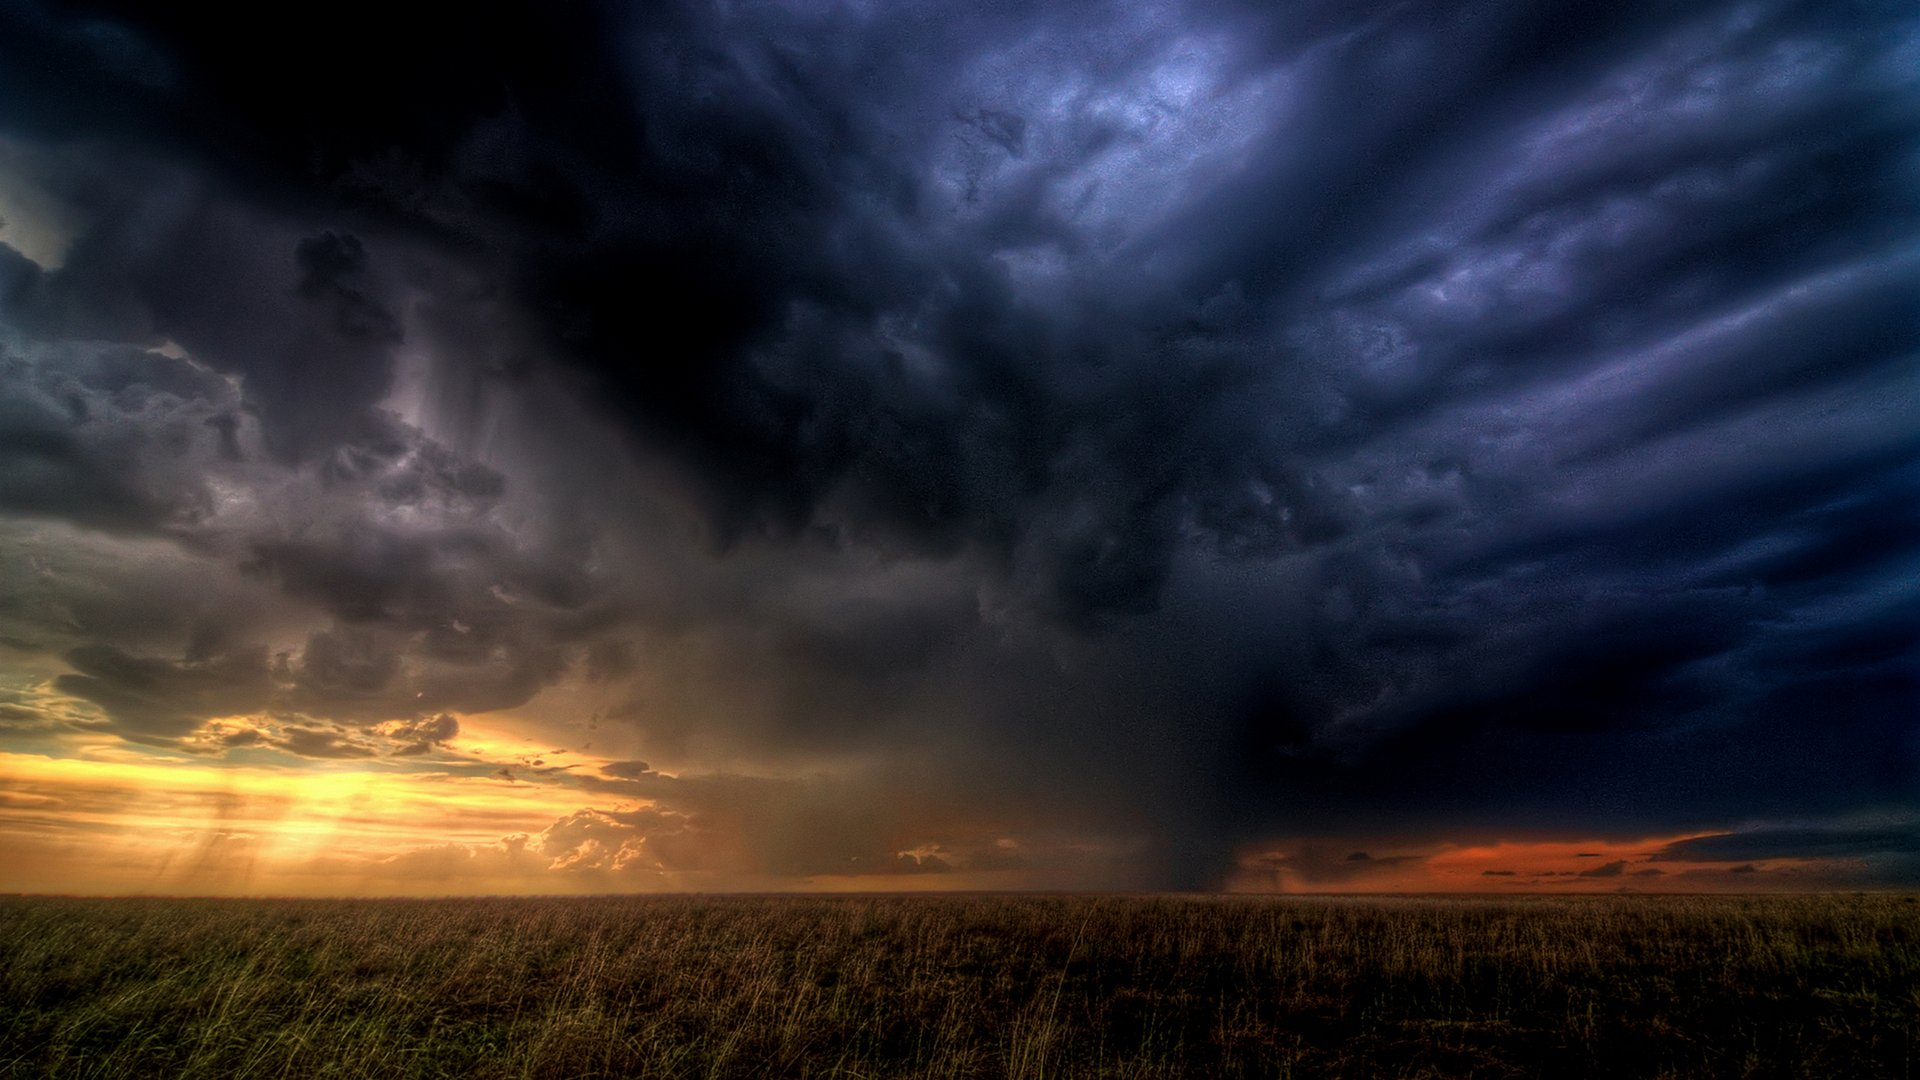 Storm Clouds Wallpaper